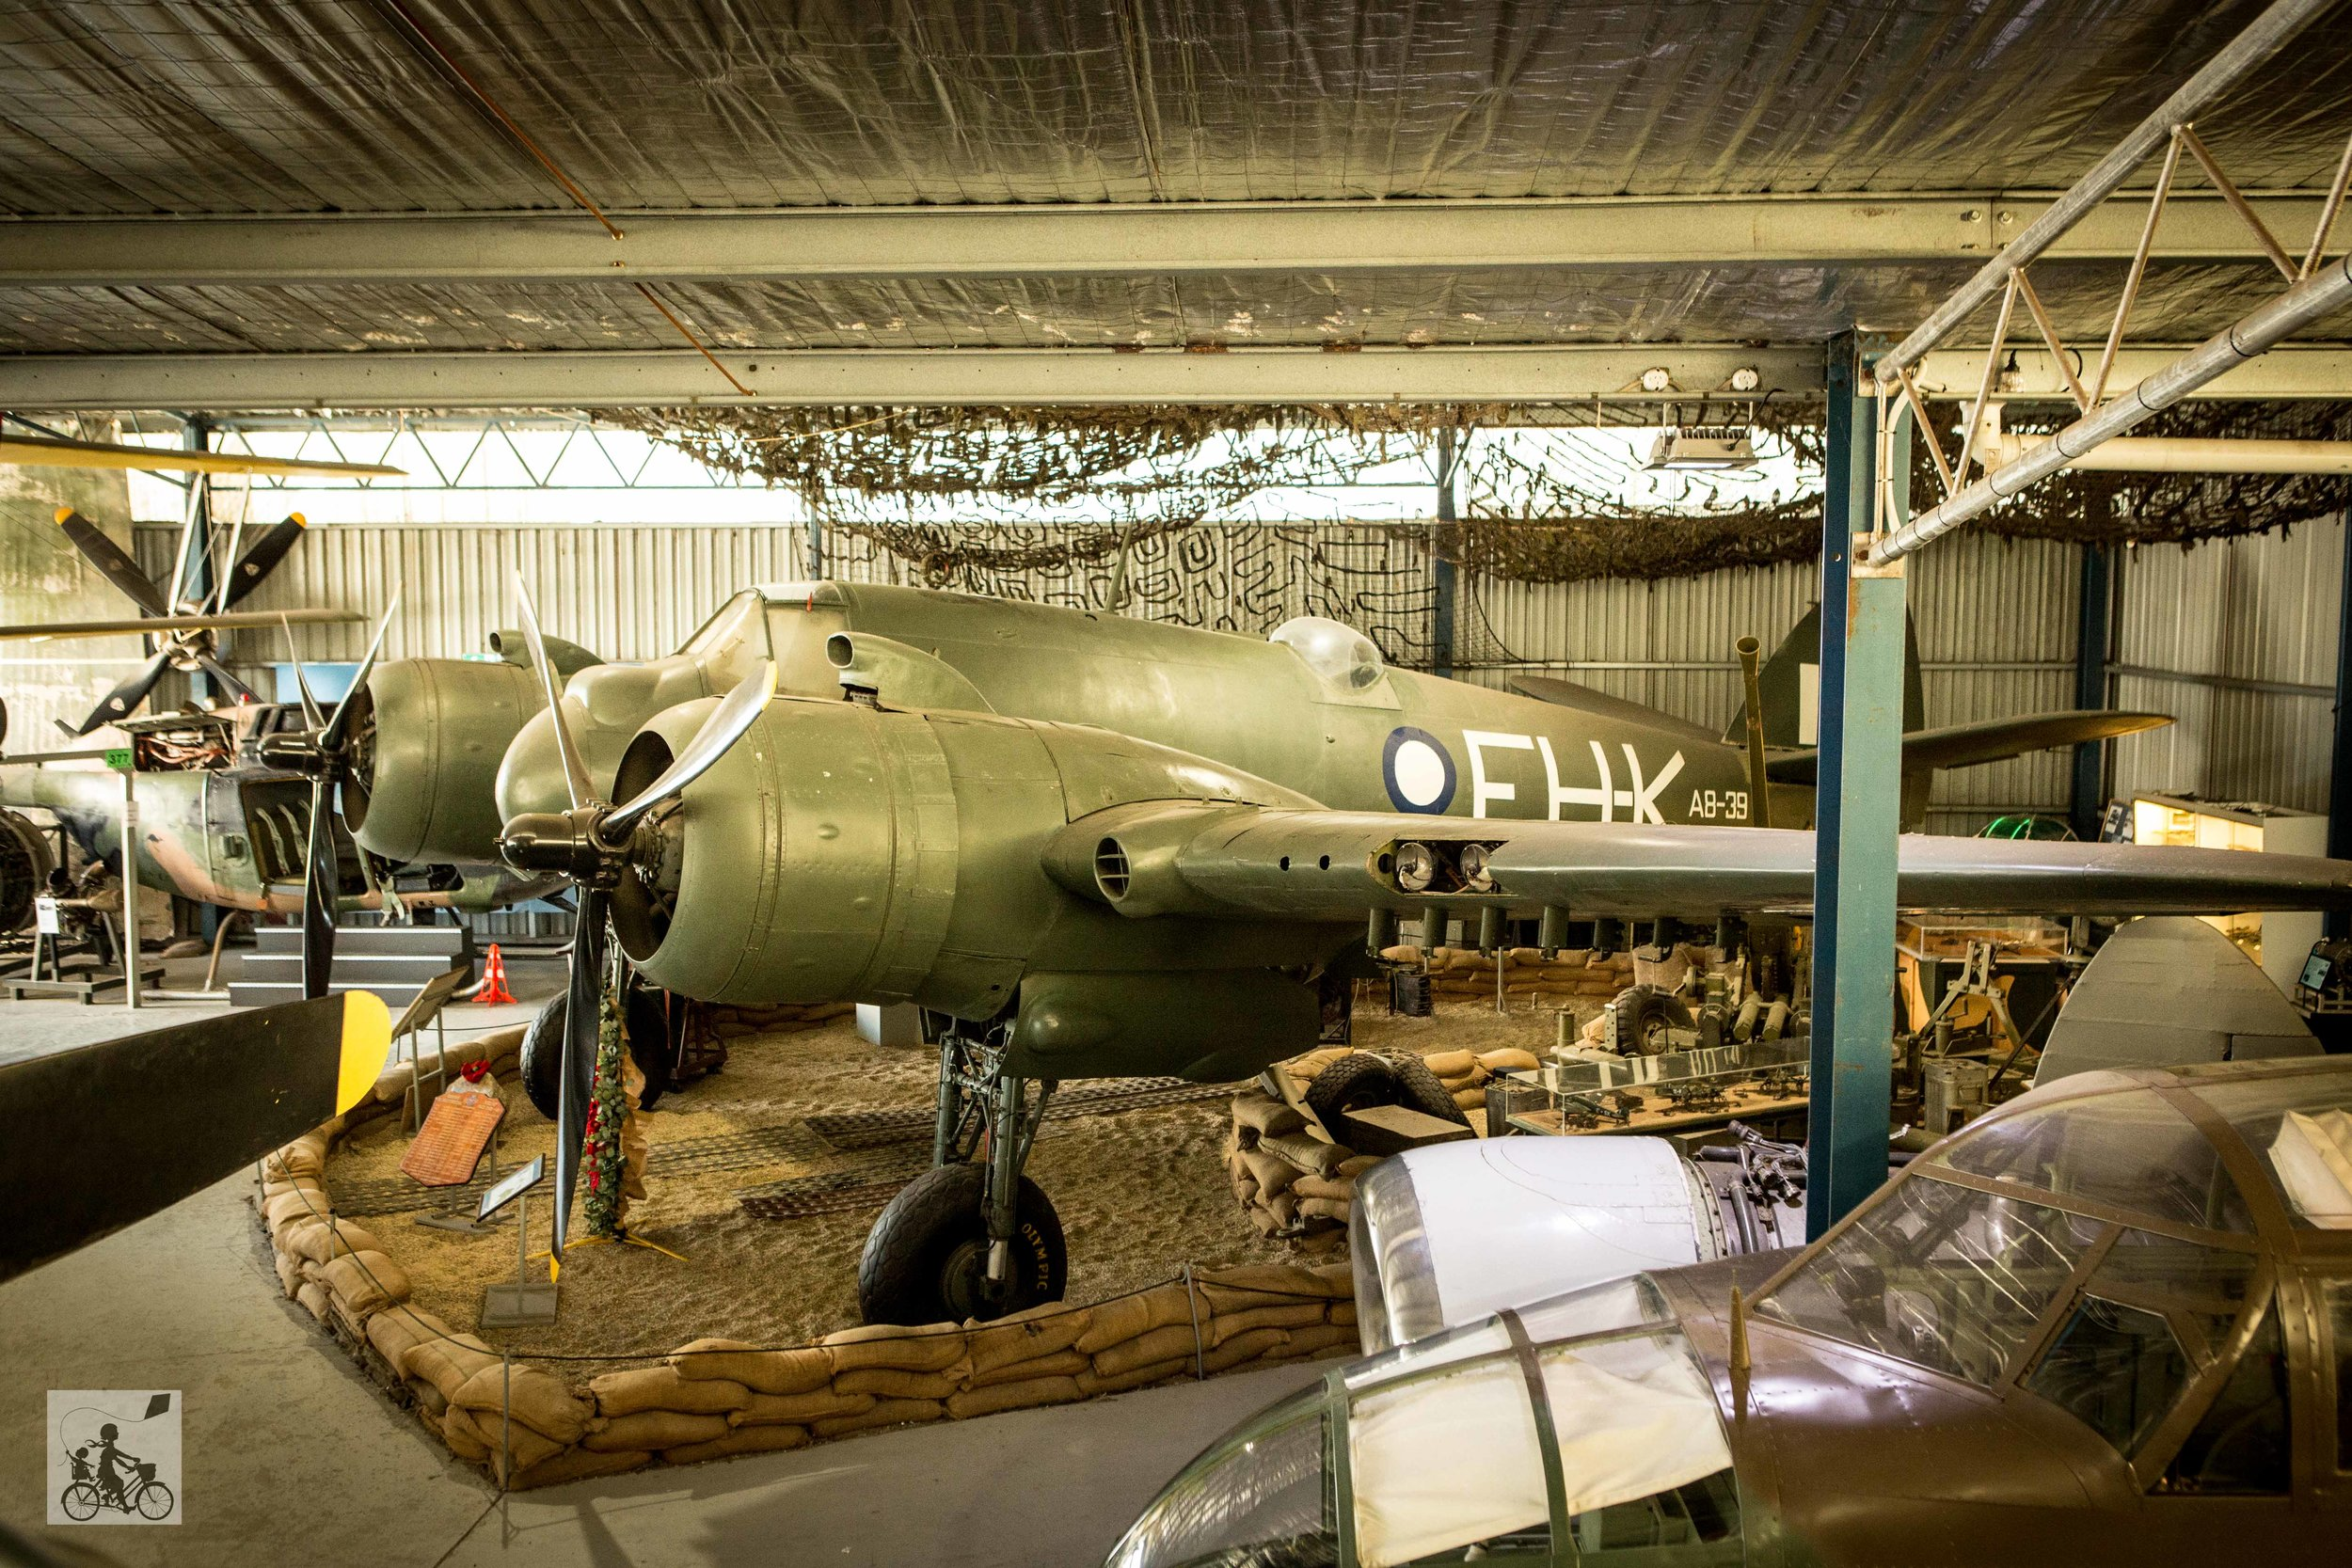 Australian National Aviation Museum - Mamma Knows South (15 of 56).jpg